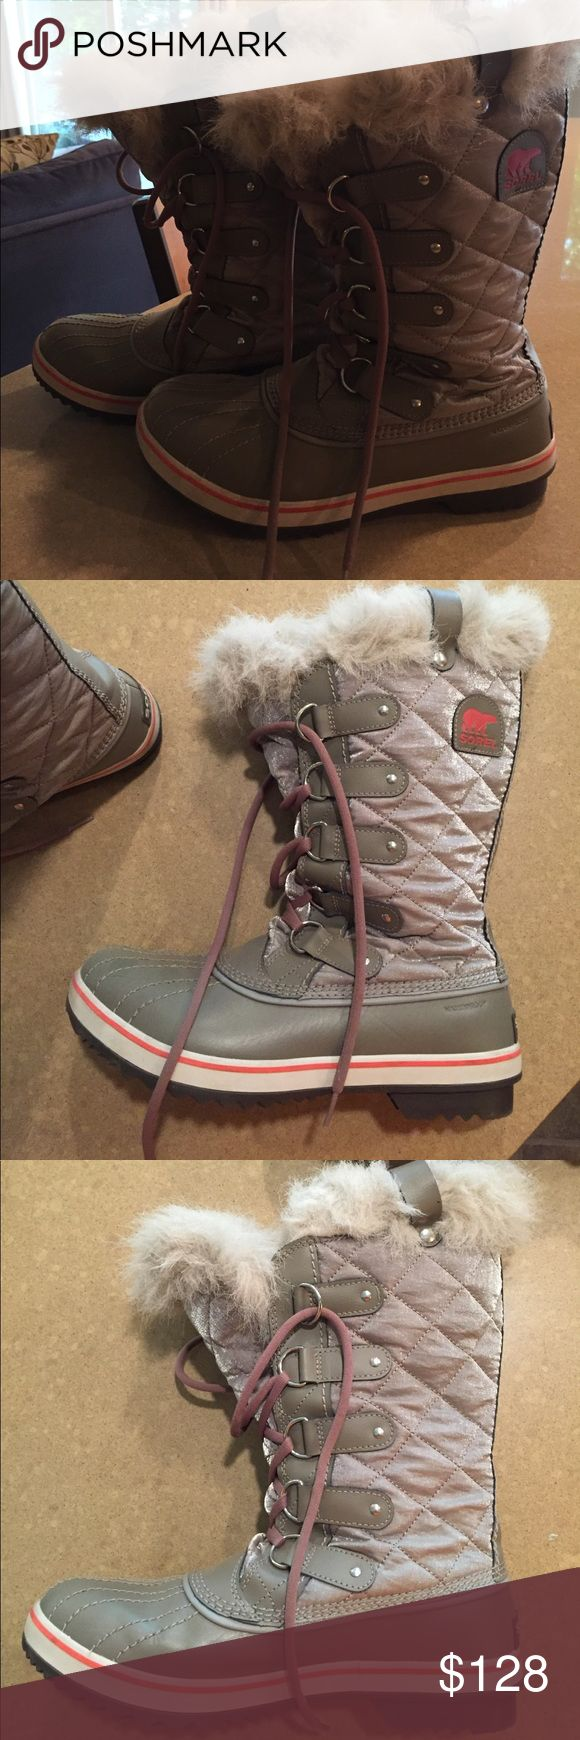 Silver and orange Joan of arc Sorel boots Worn only 3 times. US 10 but fit like a 9. Sorel Shoes Winter & Rain Boots